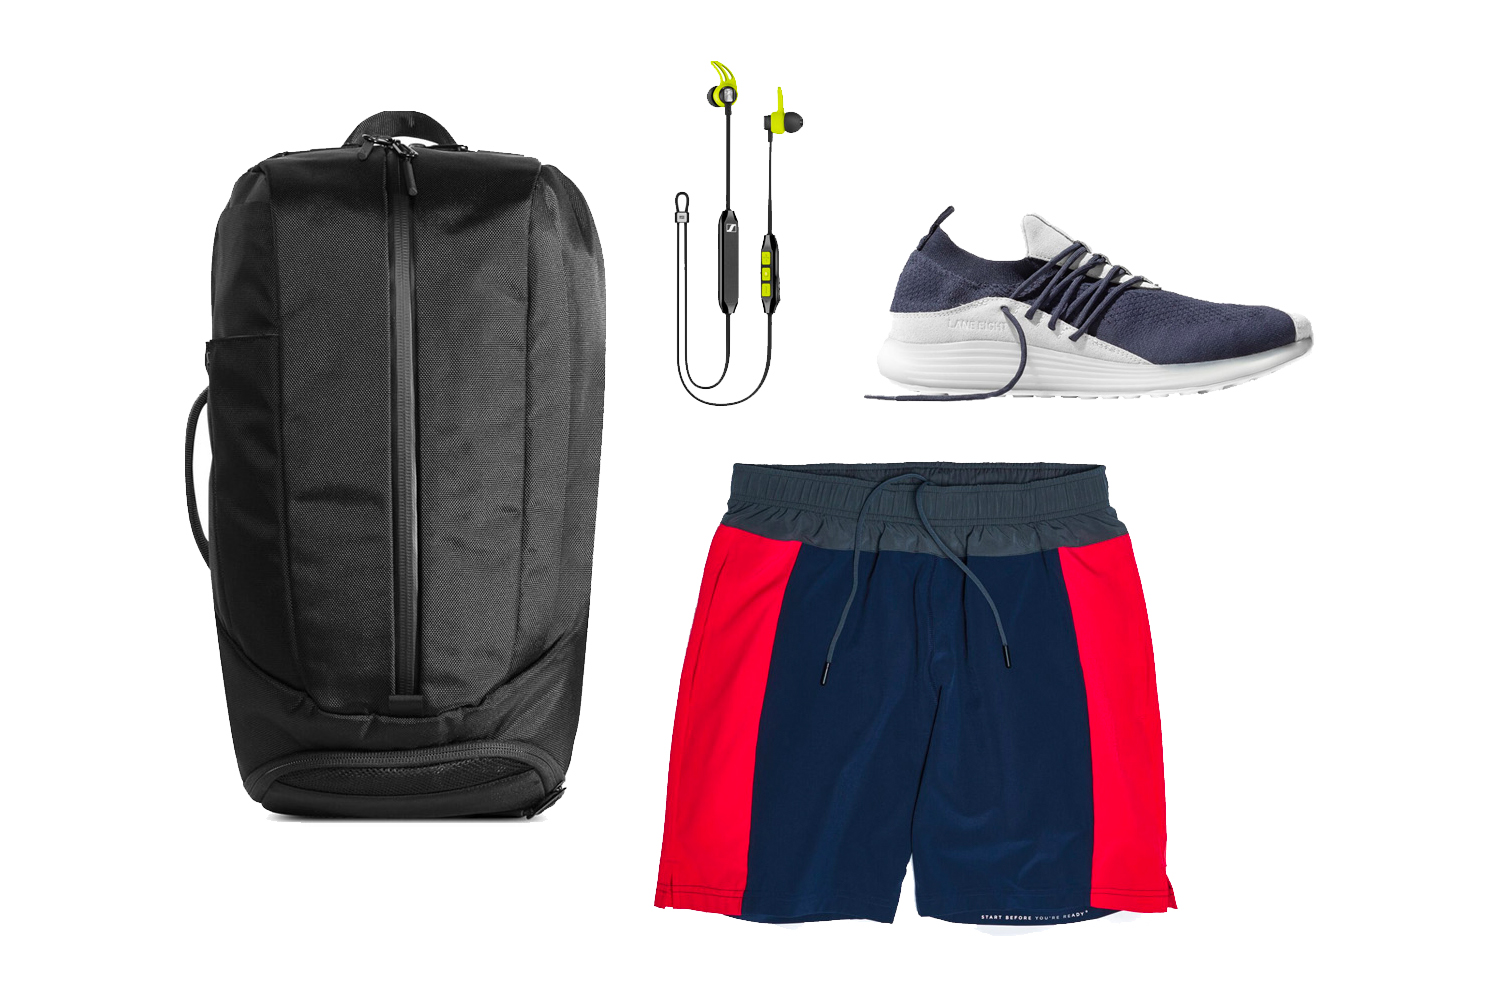 Workout gear for the gym rat